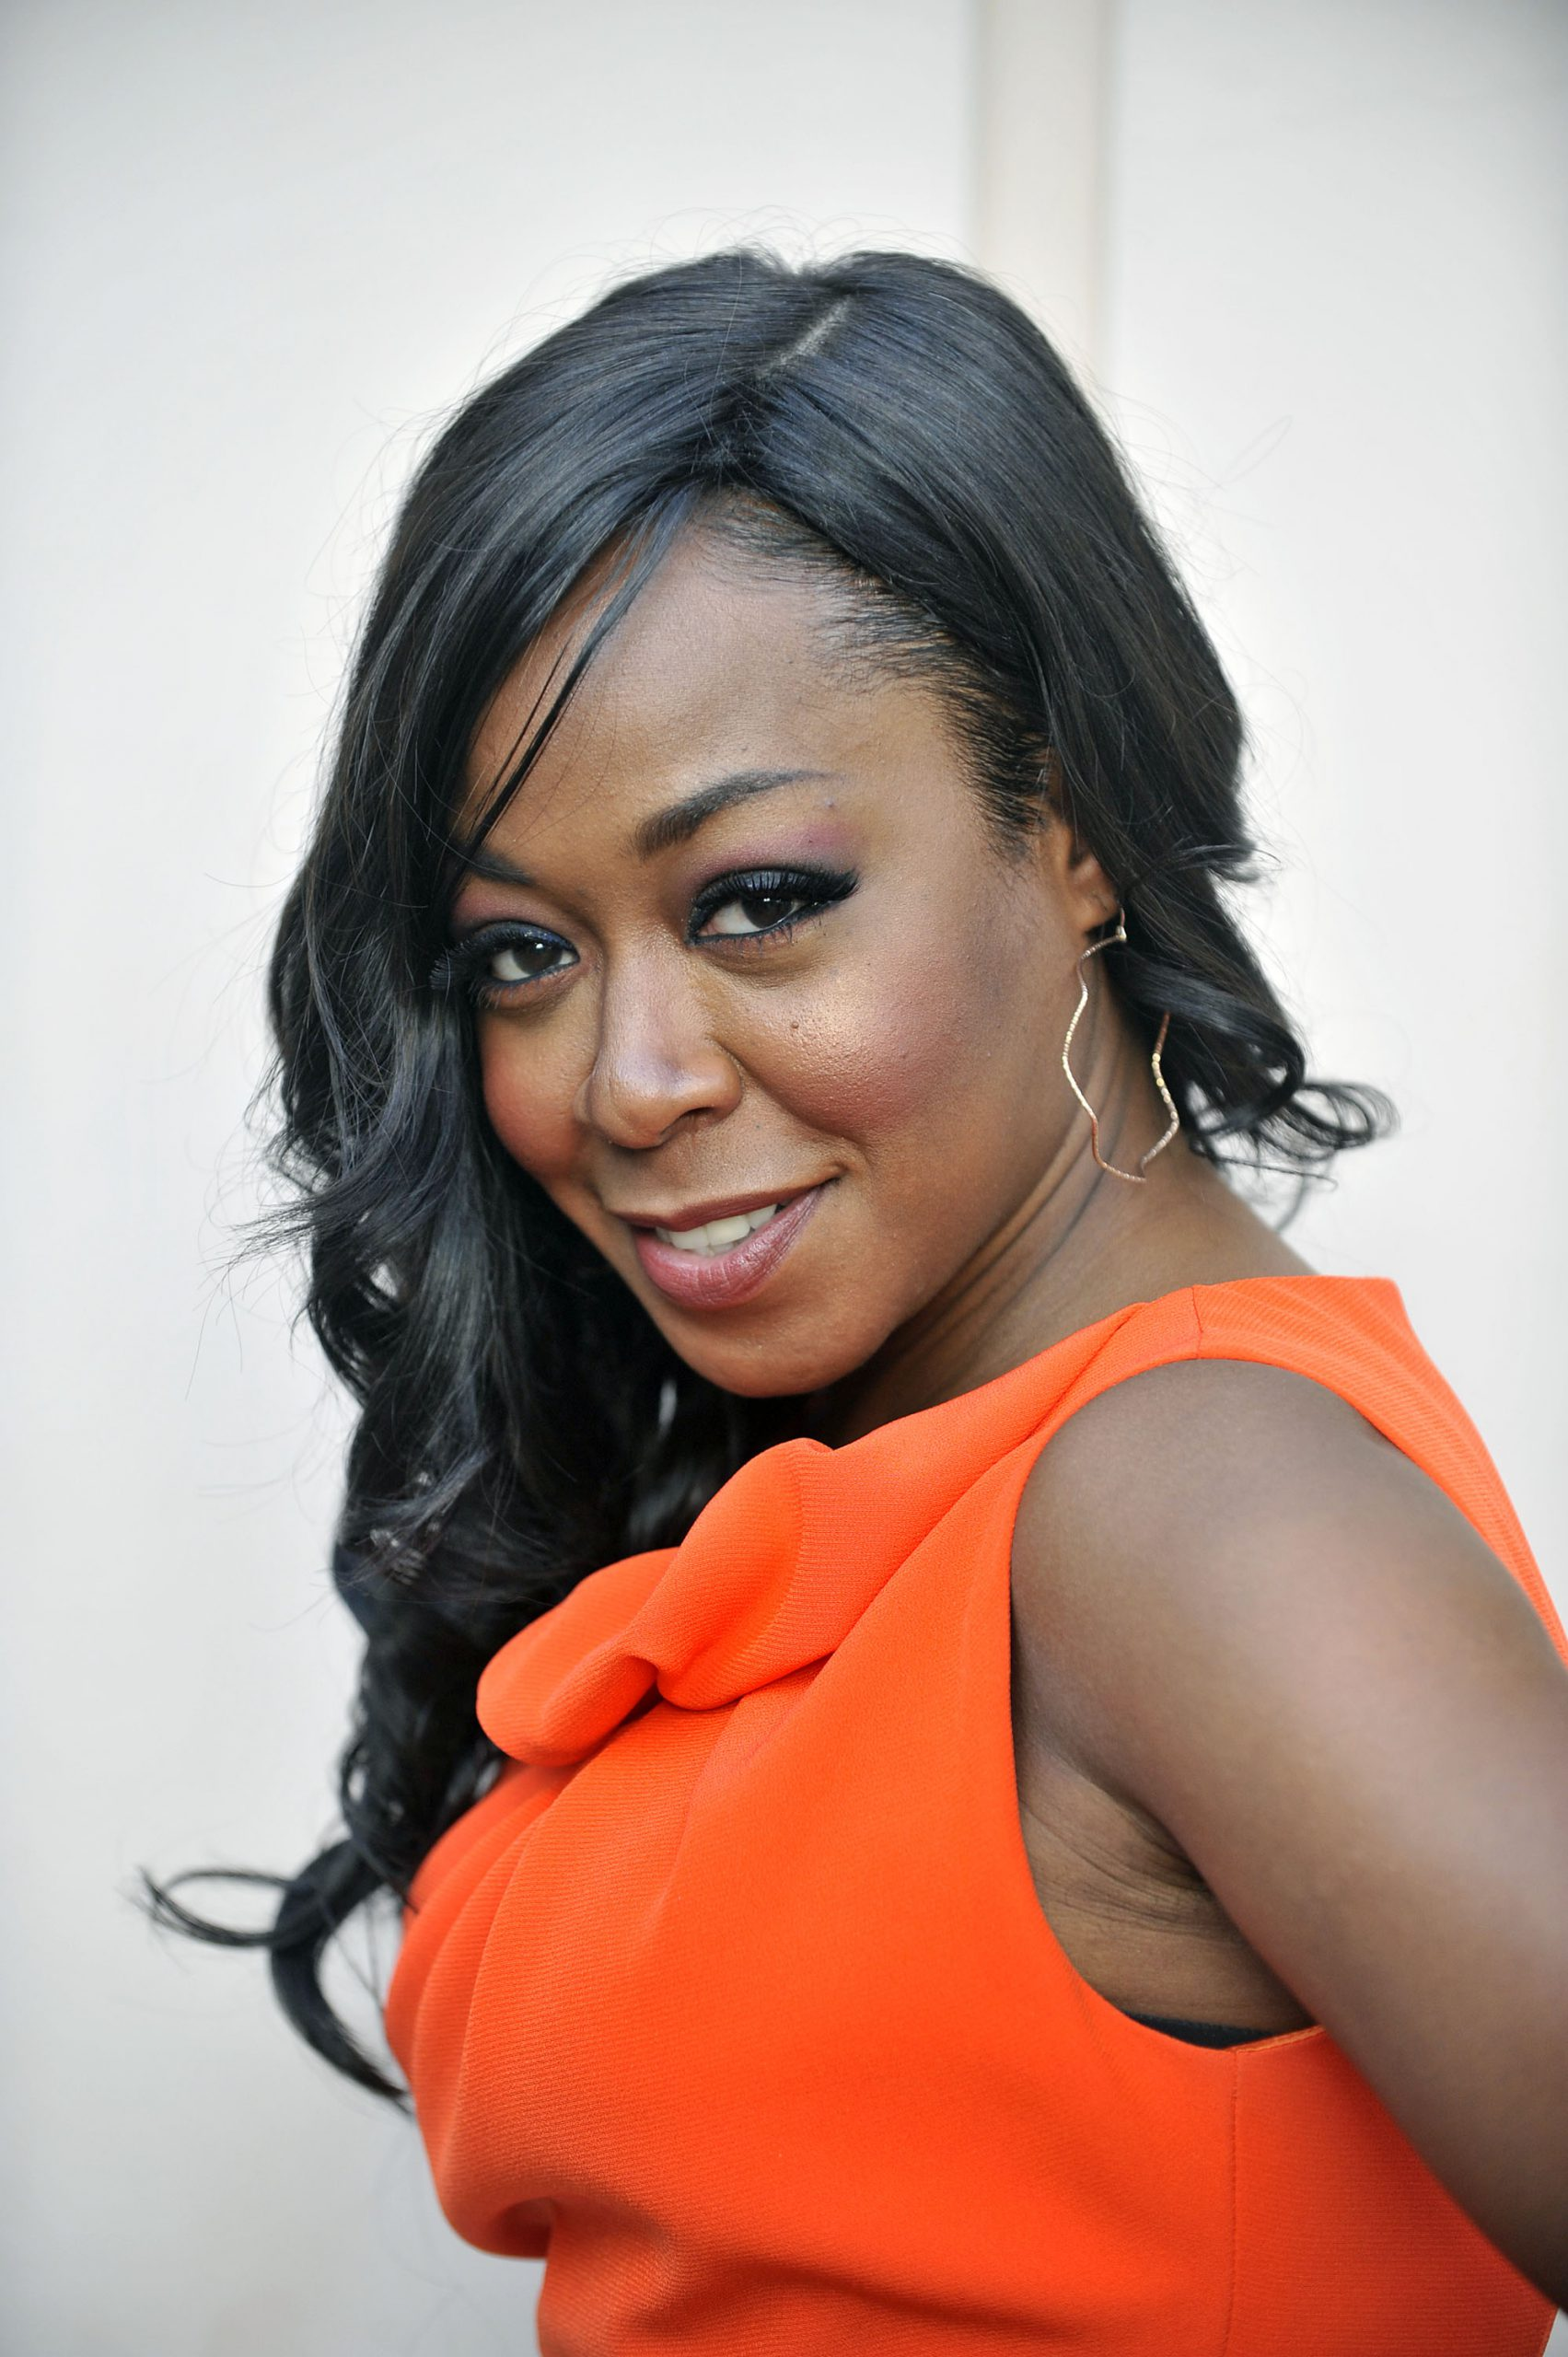 NORTH HOLLYWOOD, CA - MAY 10: Tichina Arnold arrives for an evening with Betty White held at Academy of Television Arts & Sciences on May 10, 2012 in North Hollywood, California. (Photo by Toby Canham/Getty Images)